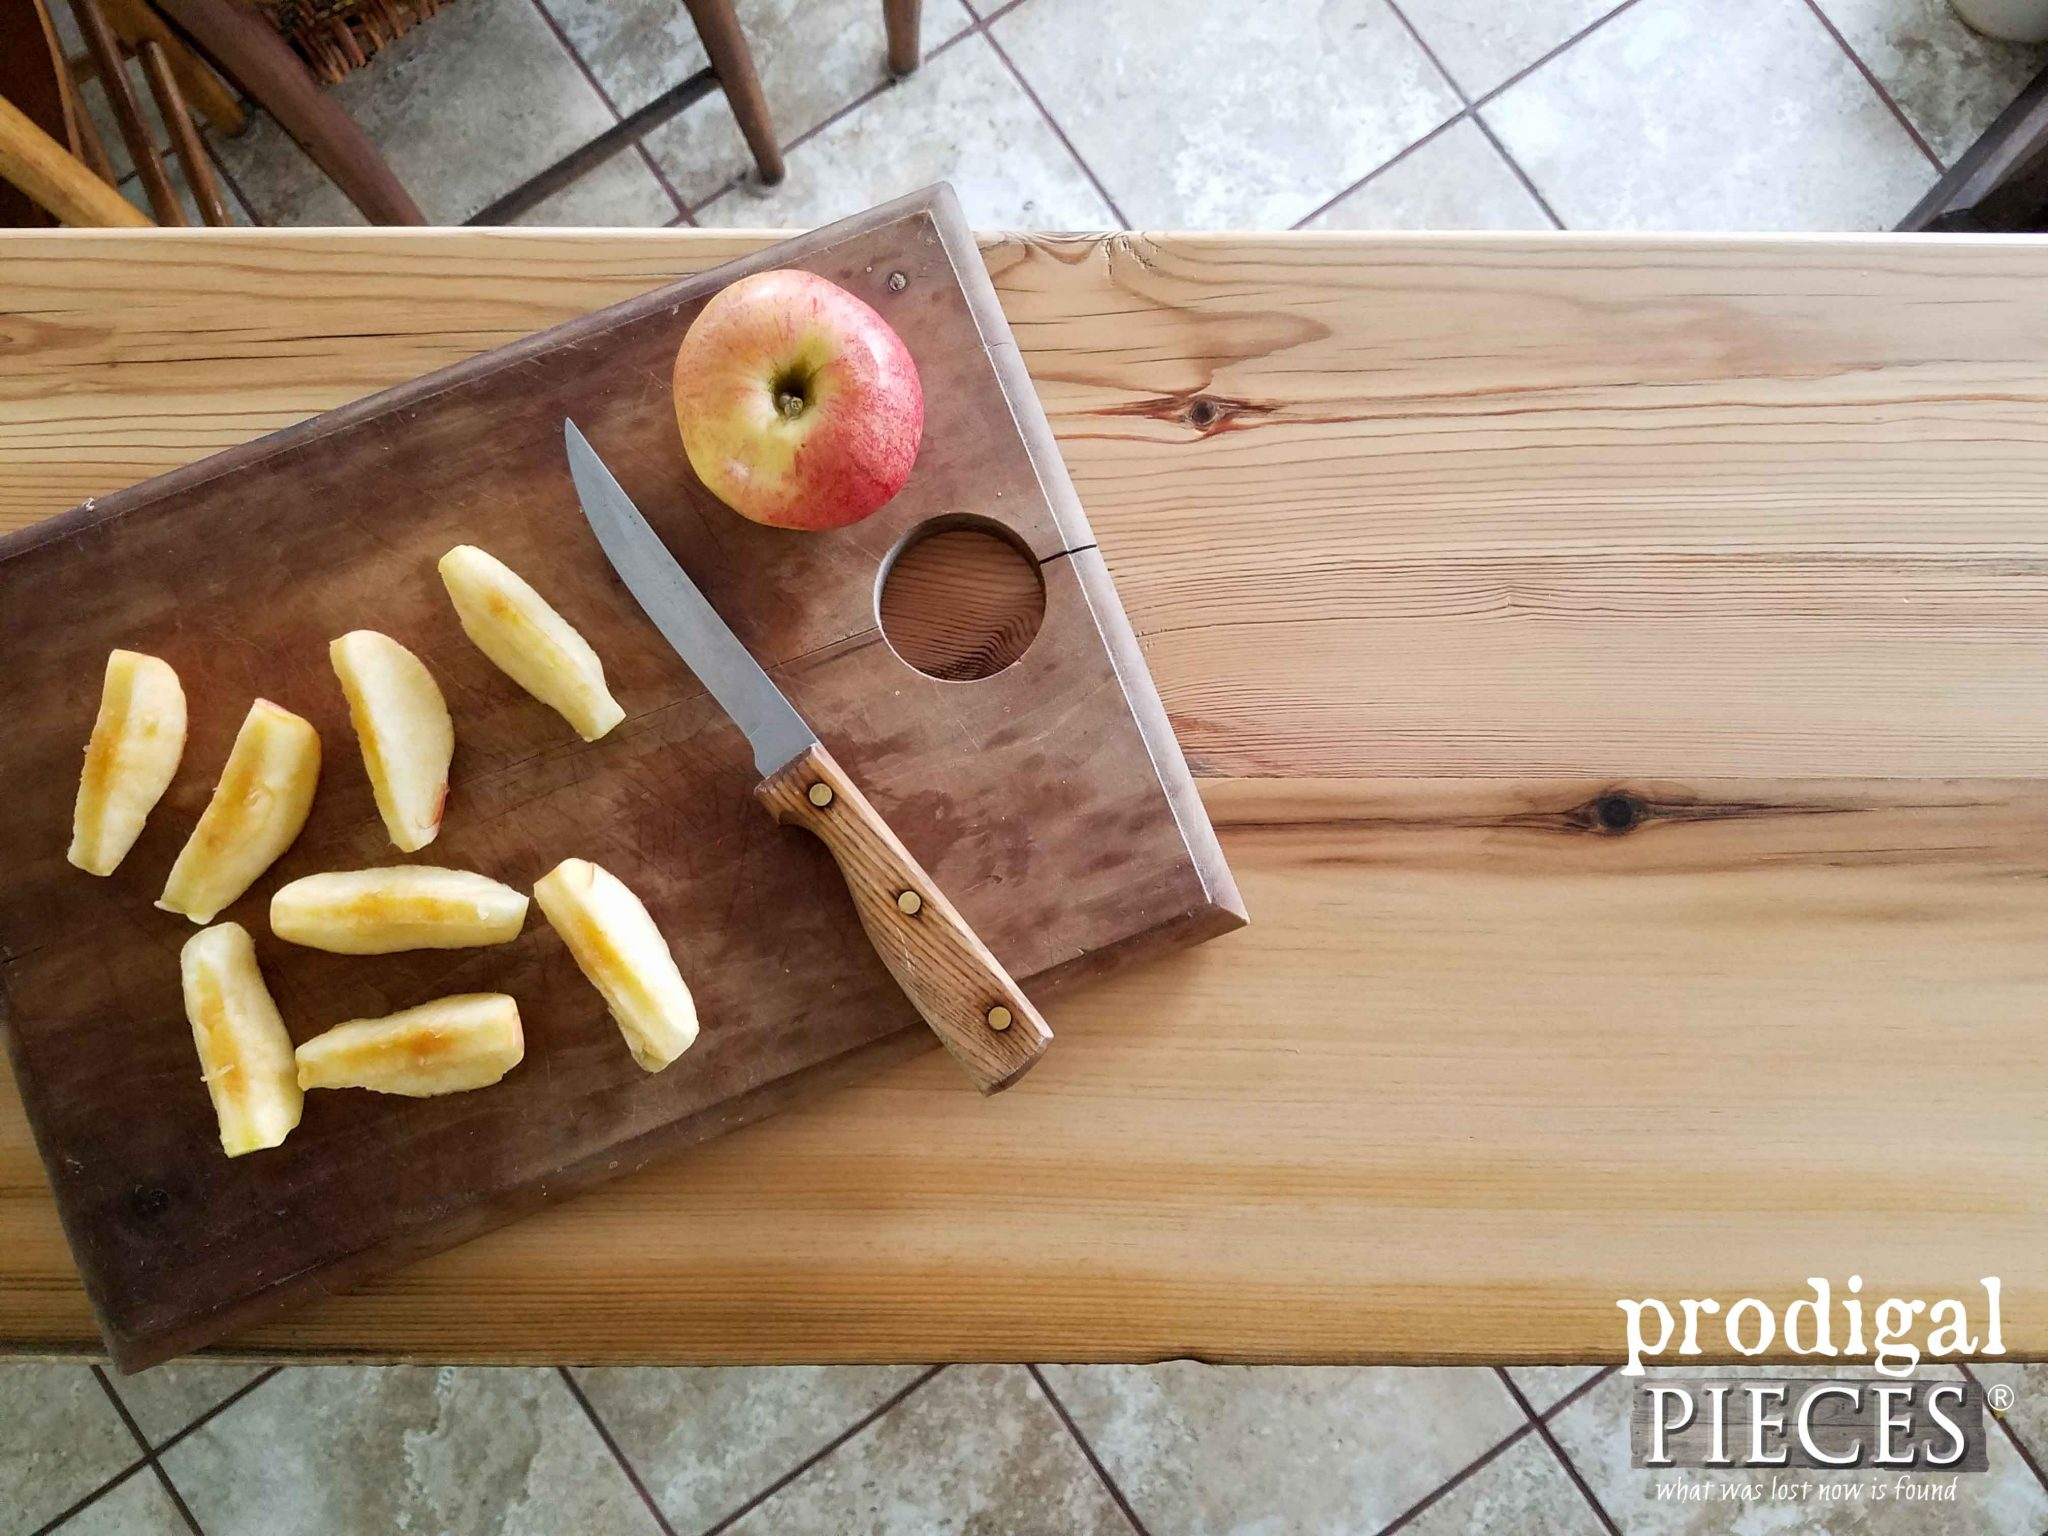 Reclaimed Wood Kitchen Cart Top by Prodigal Pieces | prodigalpieces.com